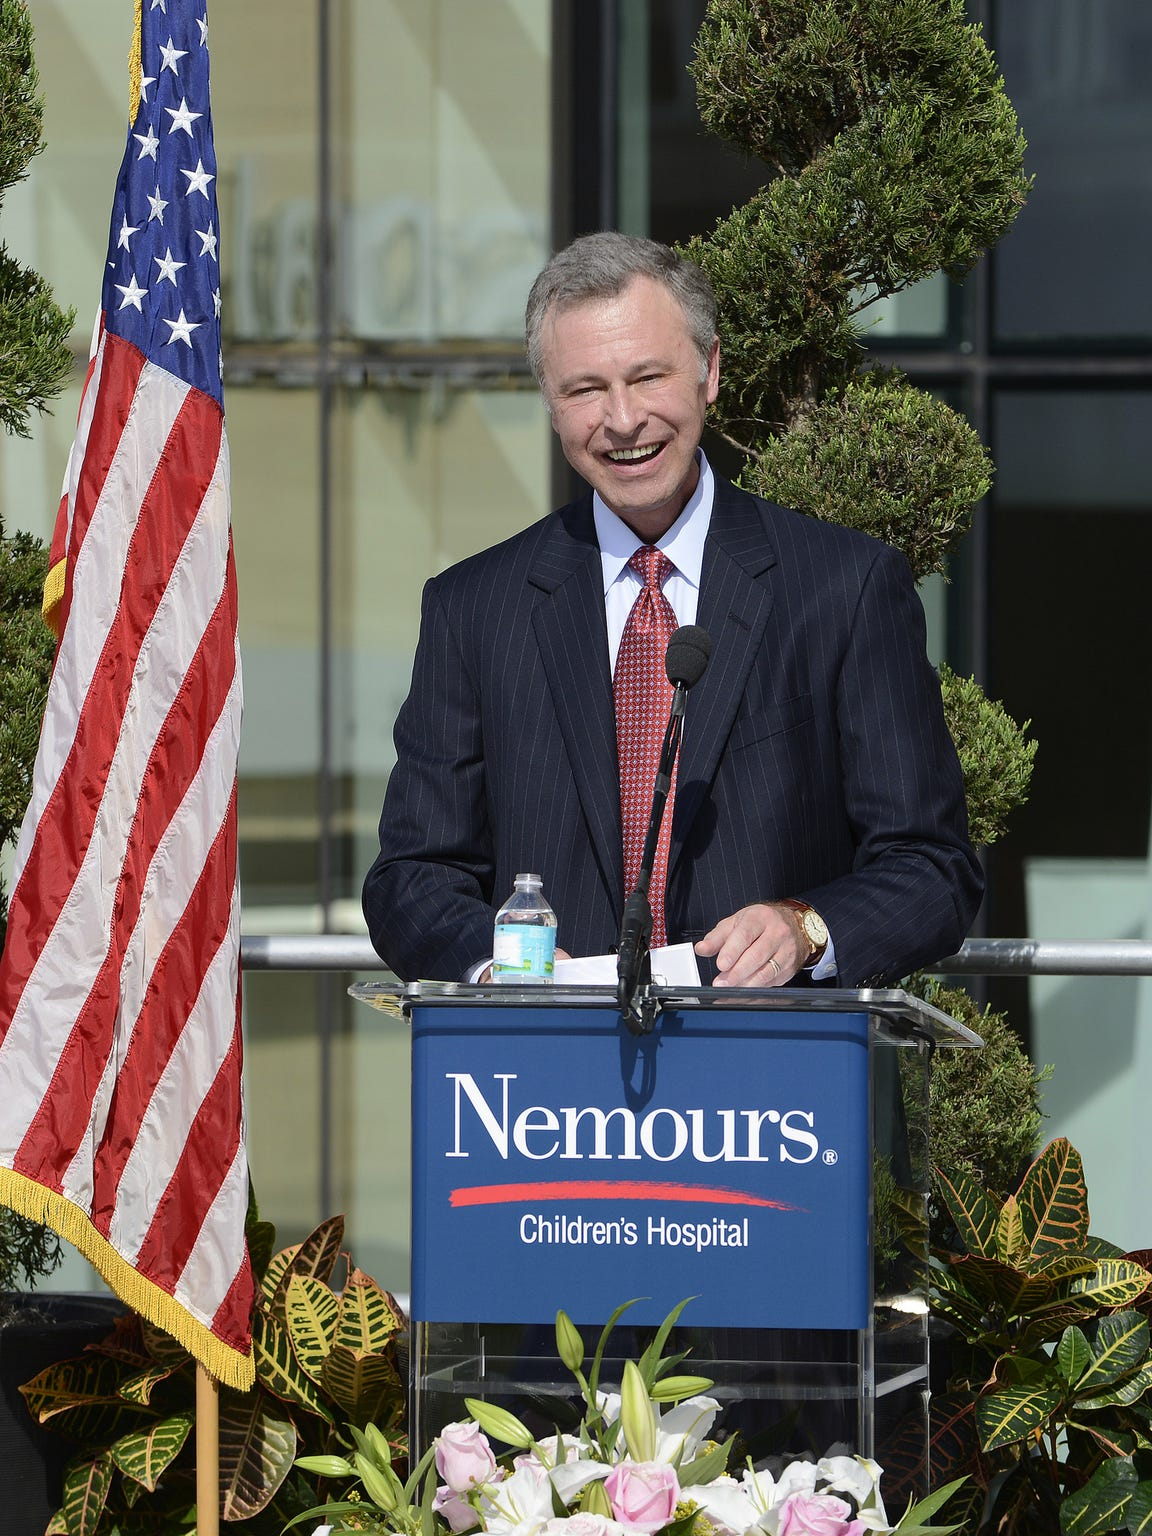 Dr. David Bailey, president and CEO of the Nemours